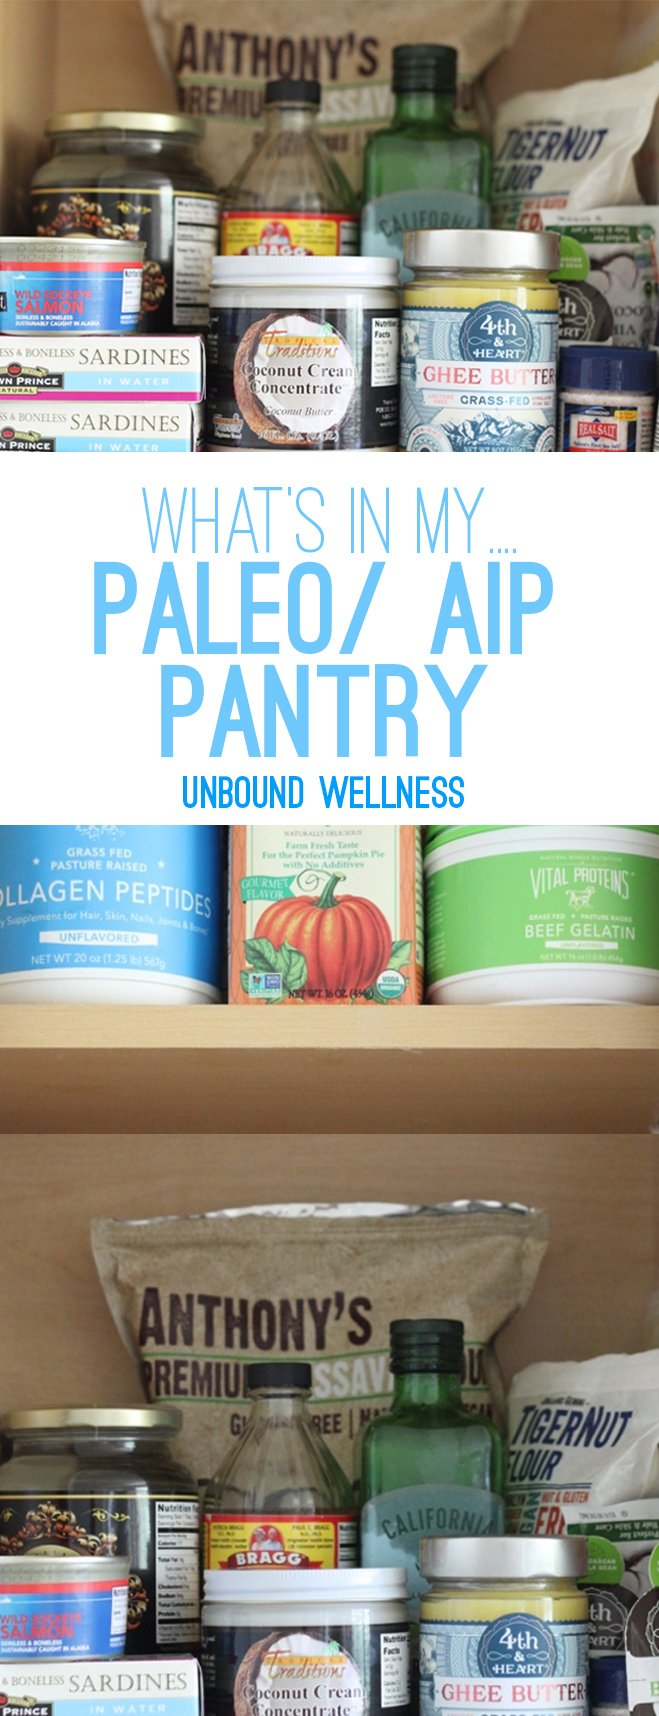 Paleo/ AIP Pantry Staples